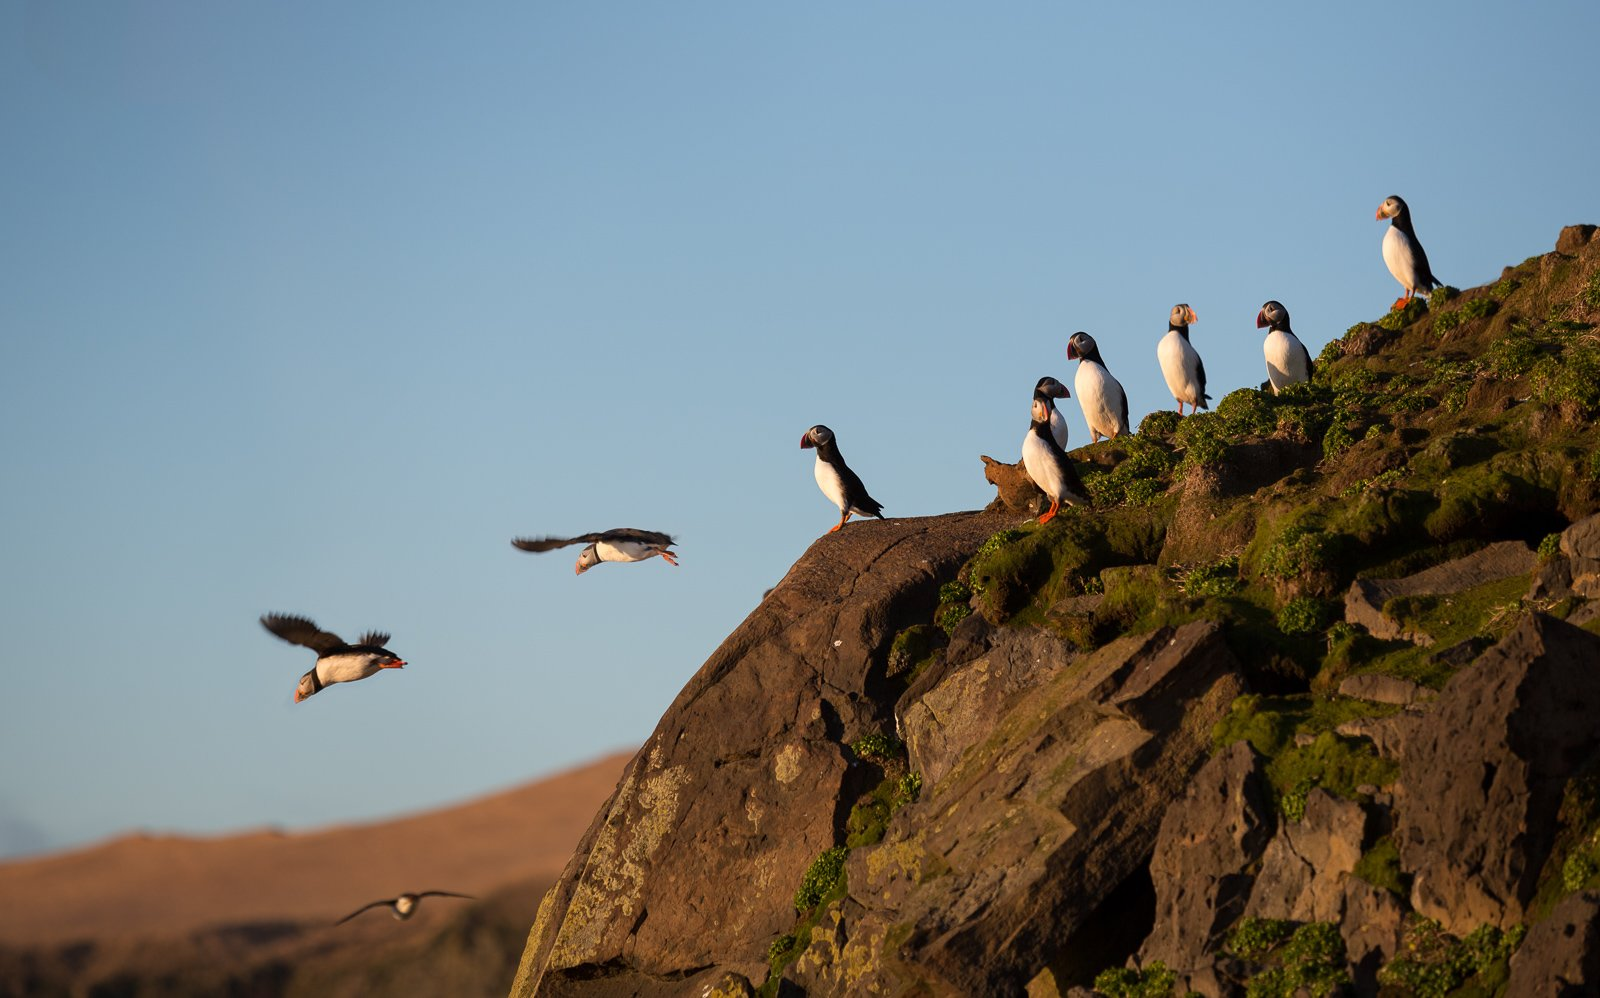 Ask A Zoologist: Why Are We Able To See Puffins Only During A Few Months?